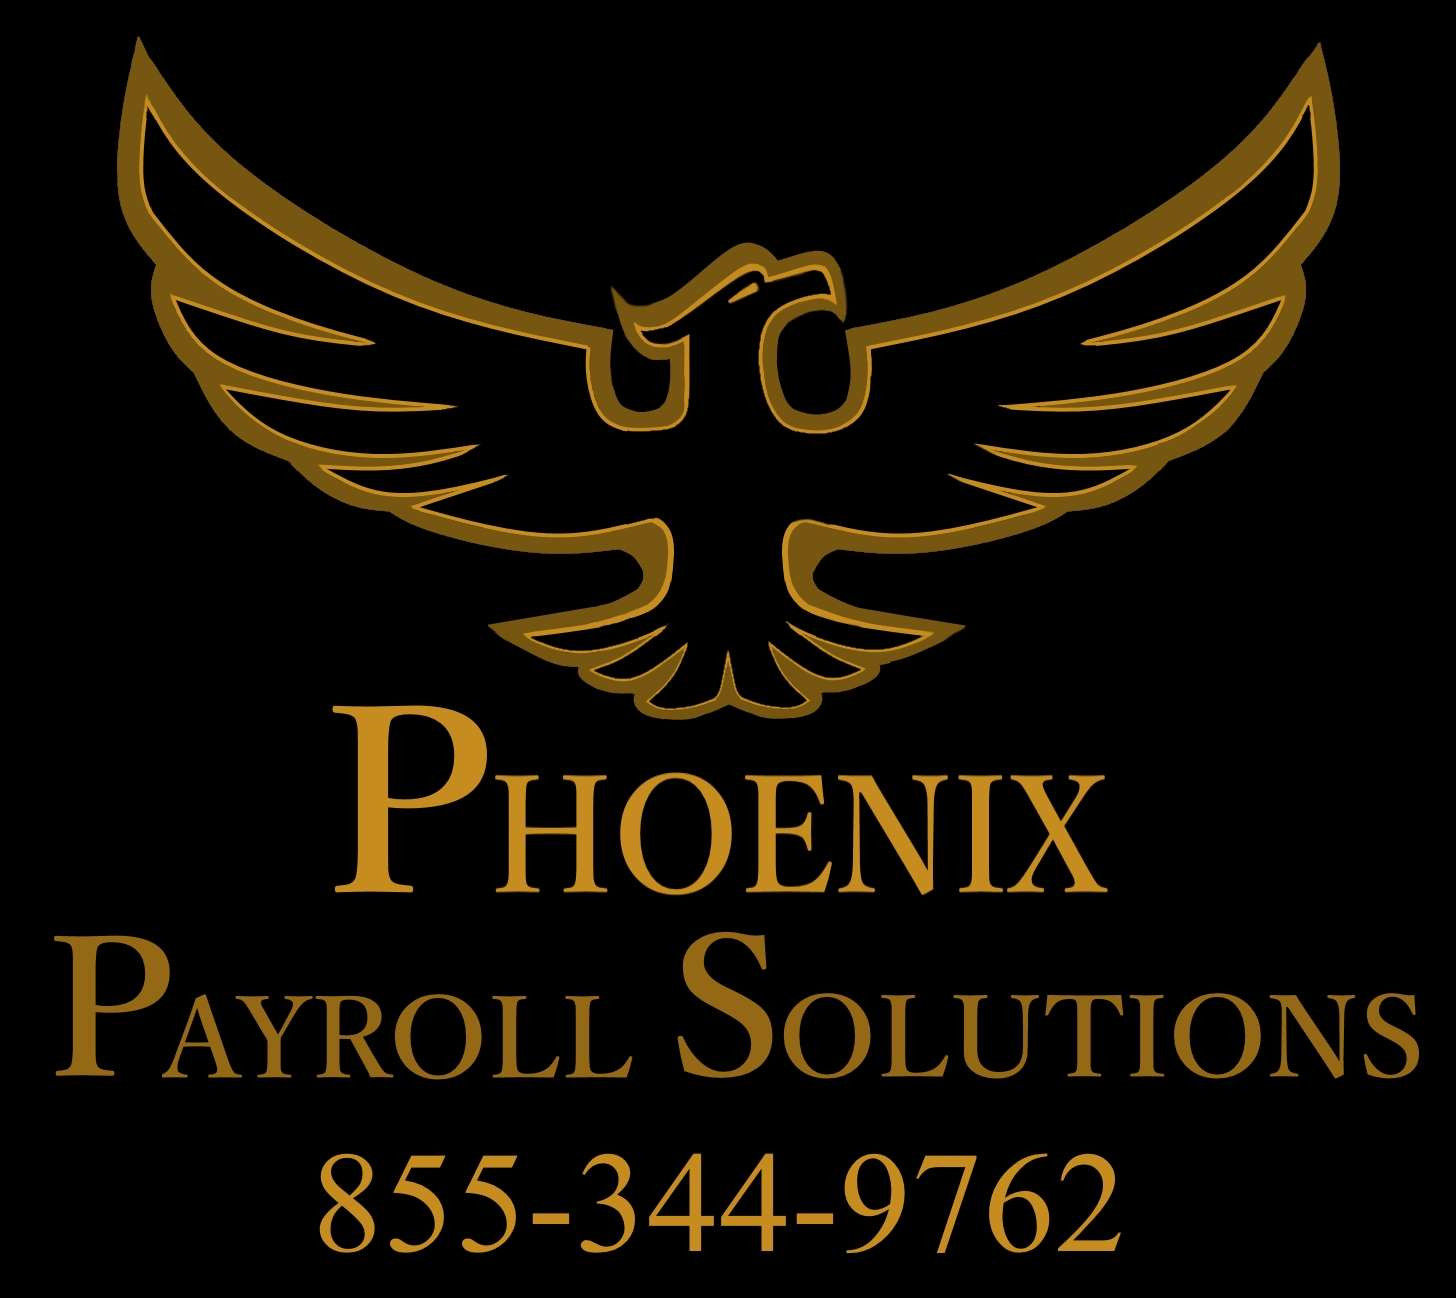 Phoenix Payroll Solutions